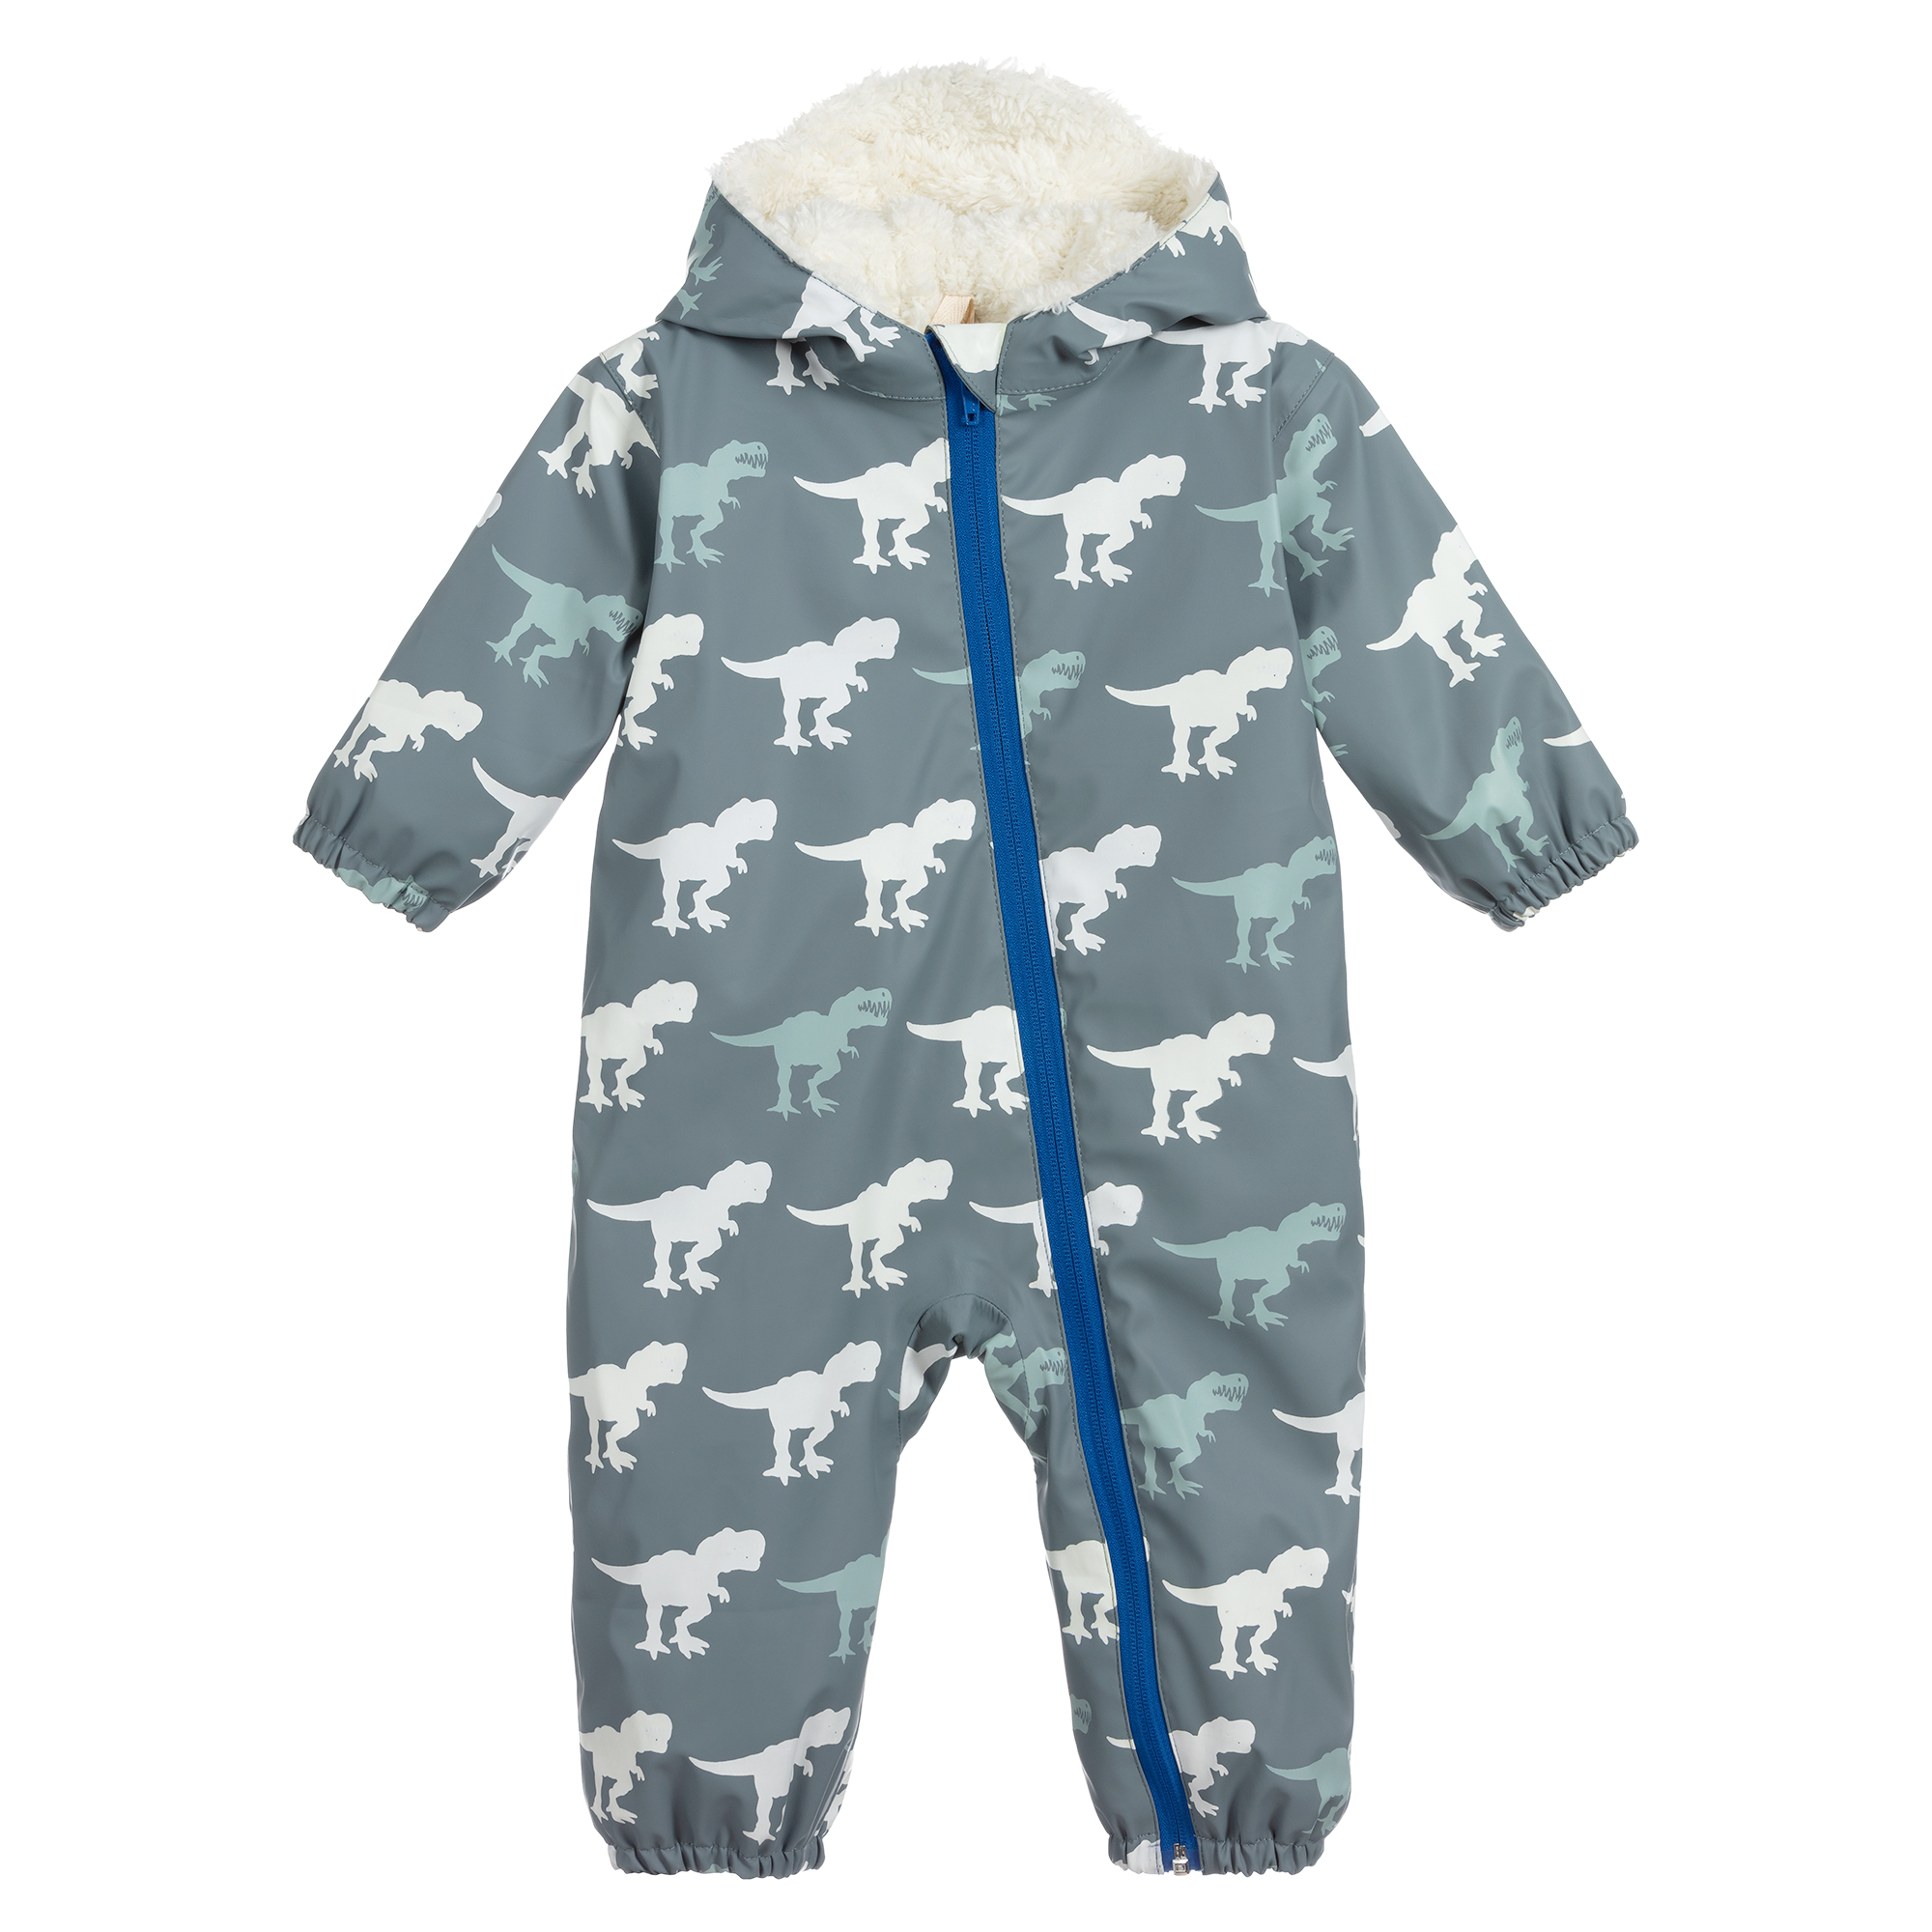 Hatley T-Rex Sherpa Lined Colour Changing Baby Bundler